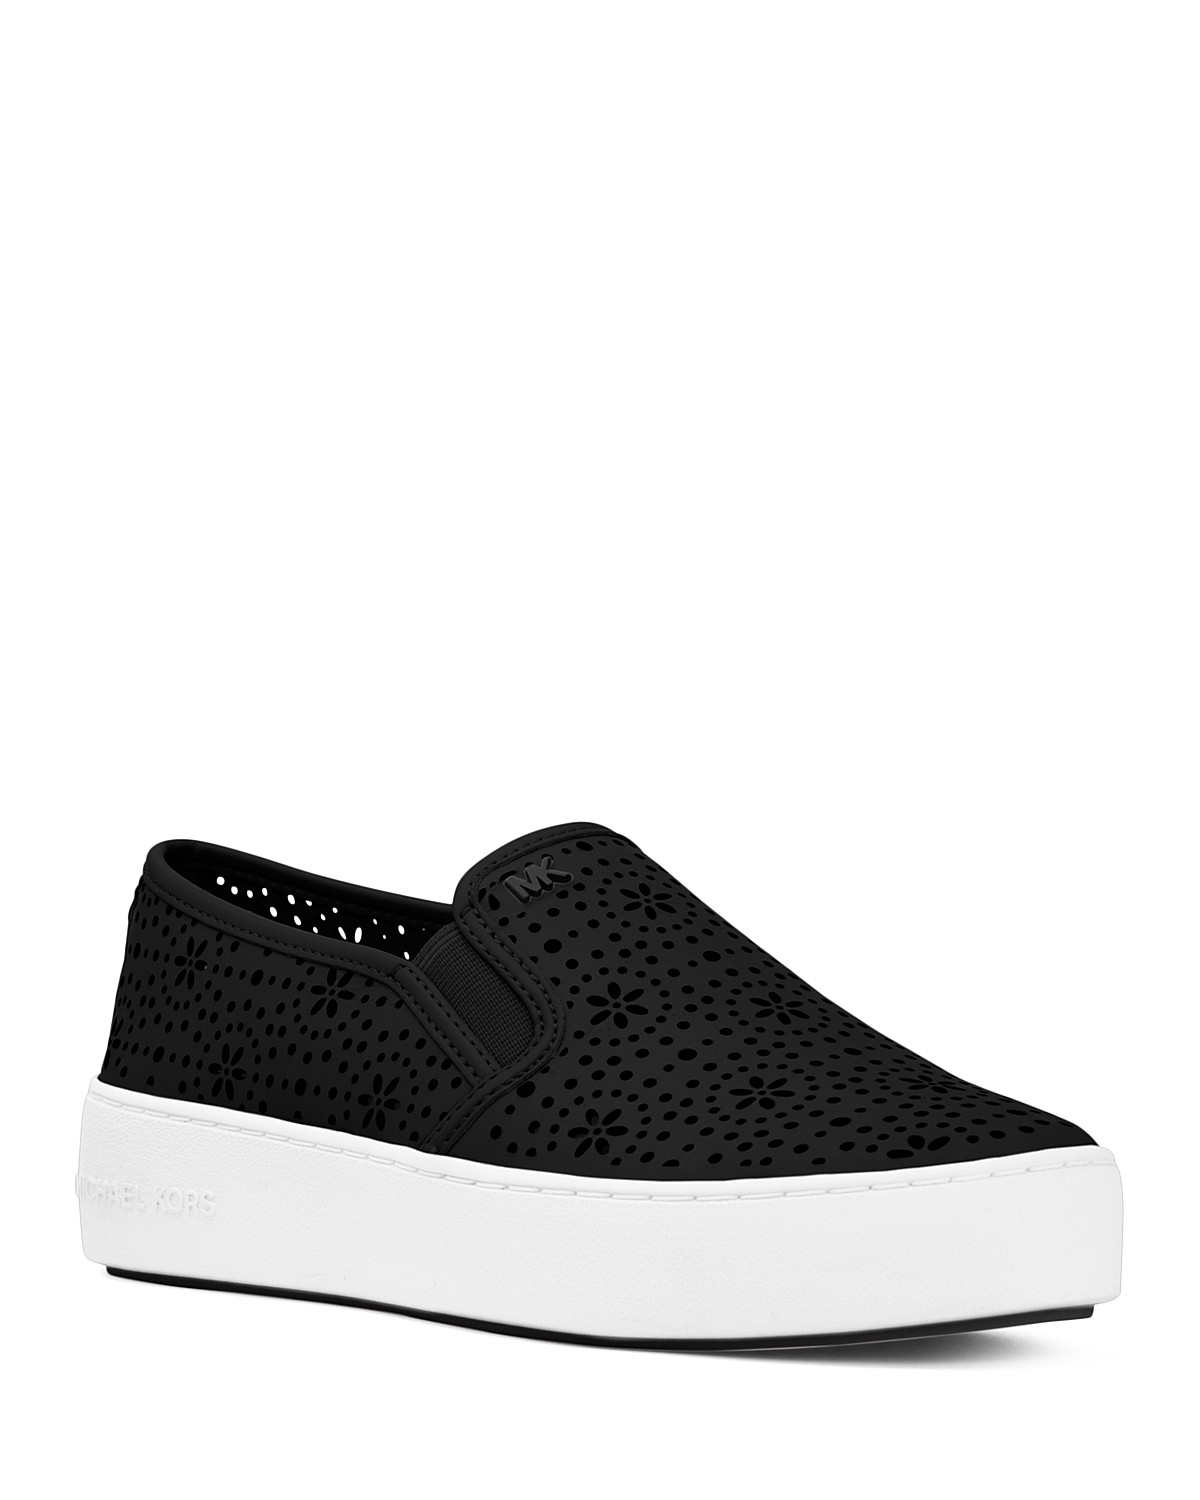 perforated wedge heel sneakers - Black Michael Kors qmofcpYFsi